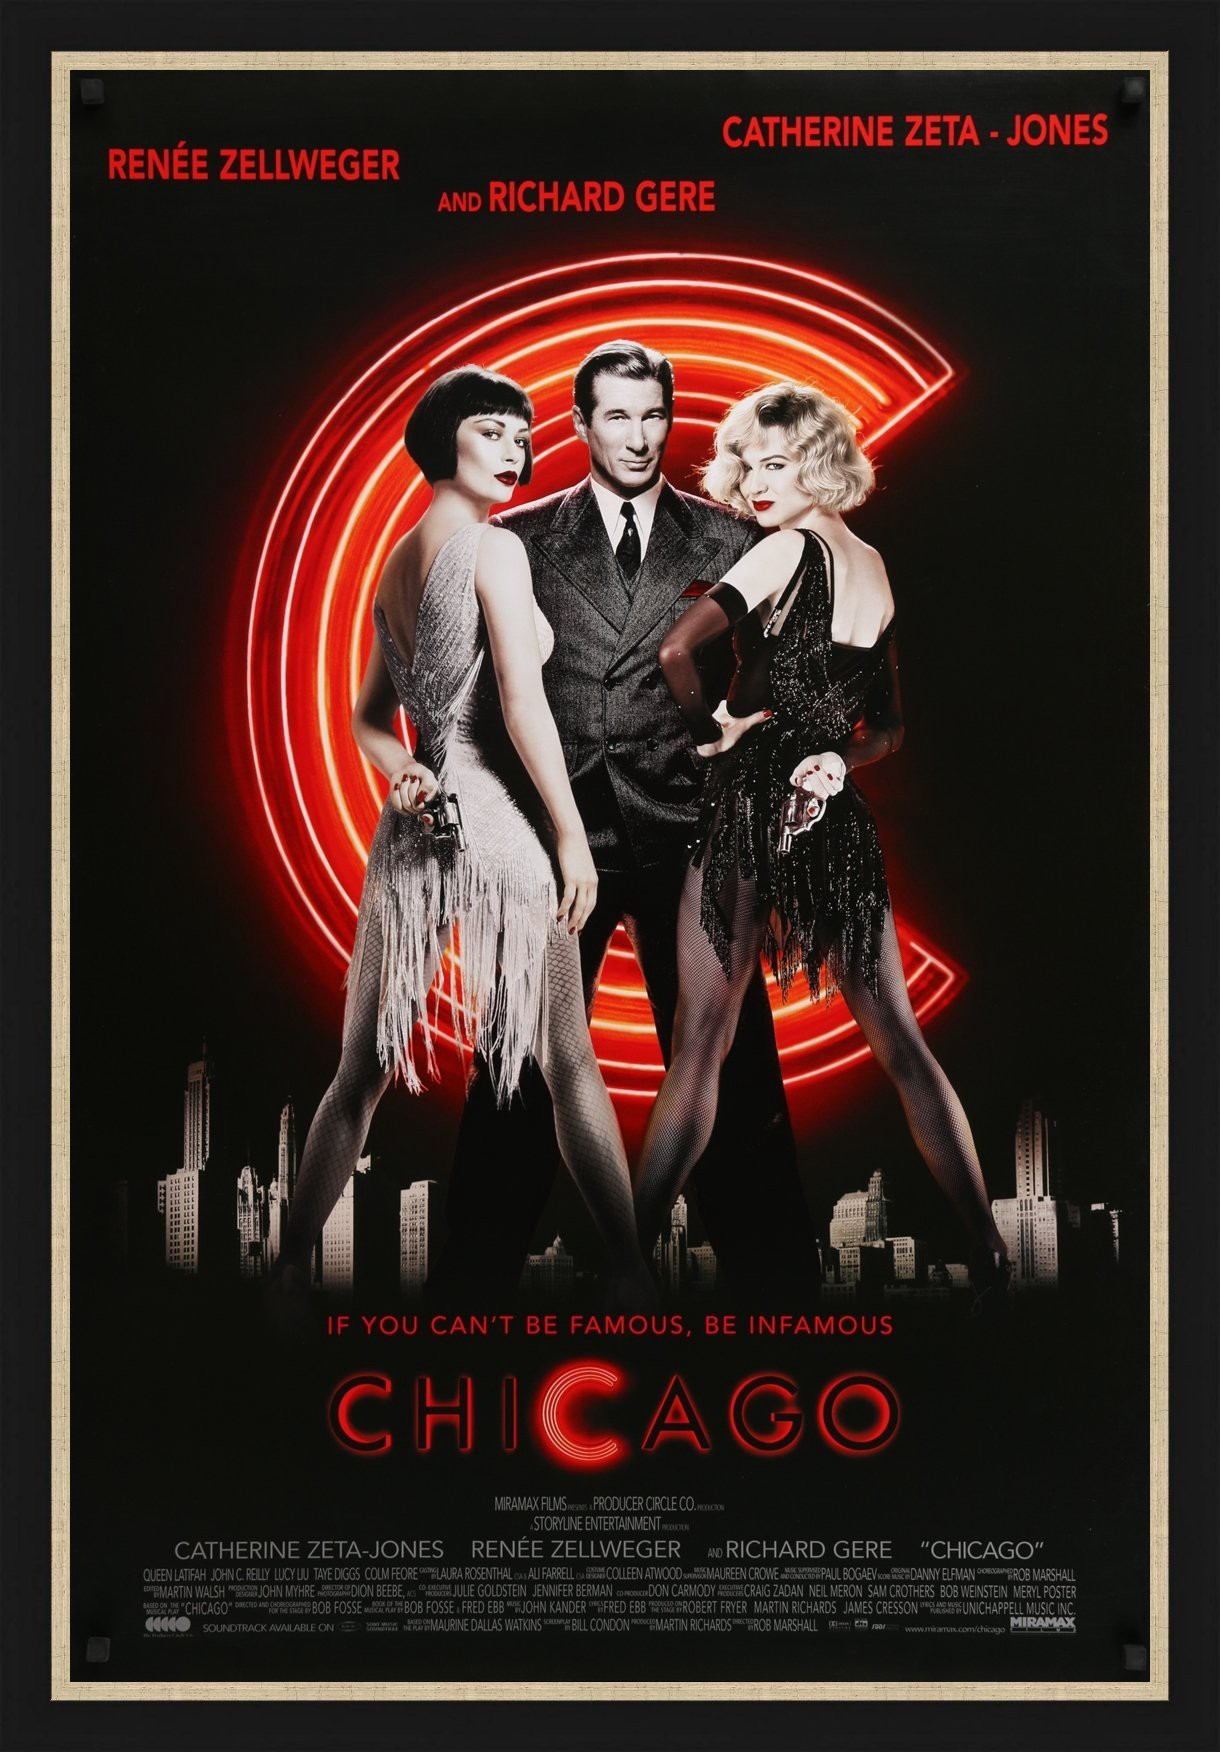 Poster for the film Chicago